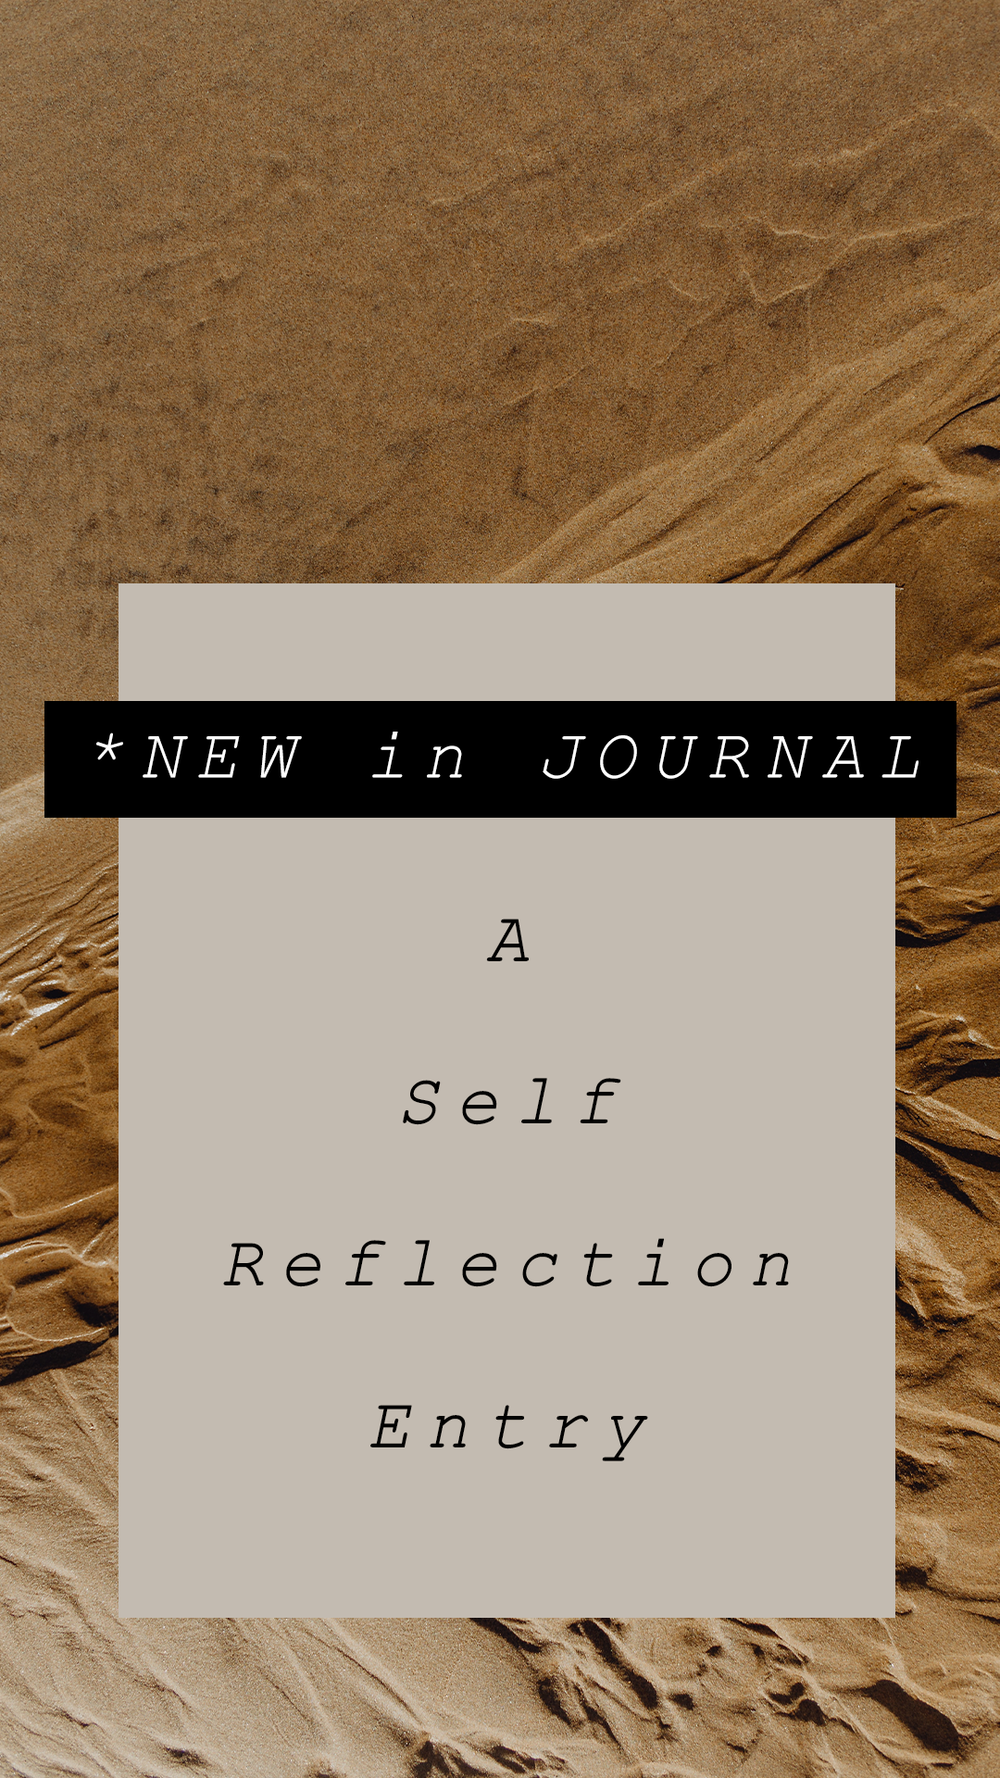 Self Reflection - Some words about my hiatus on social media and getting back in the game.